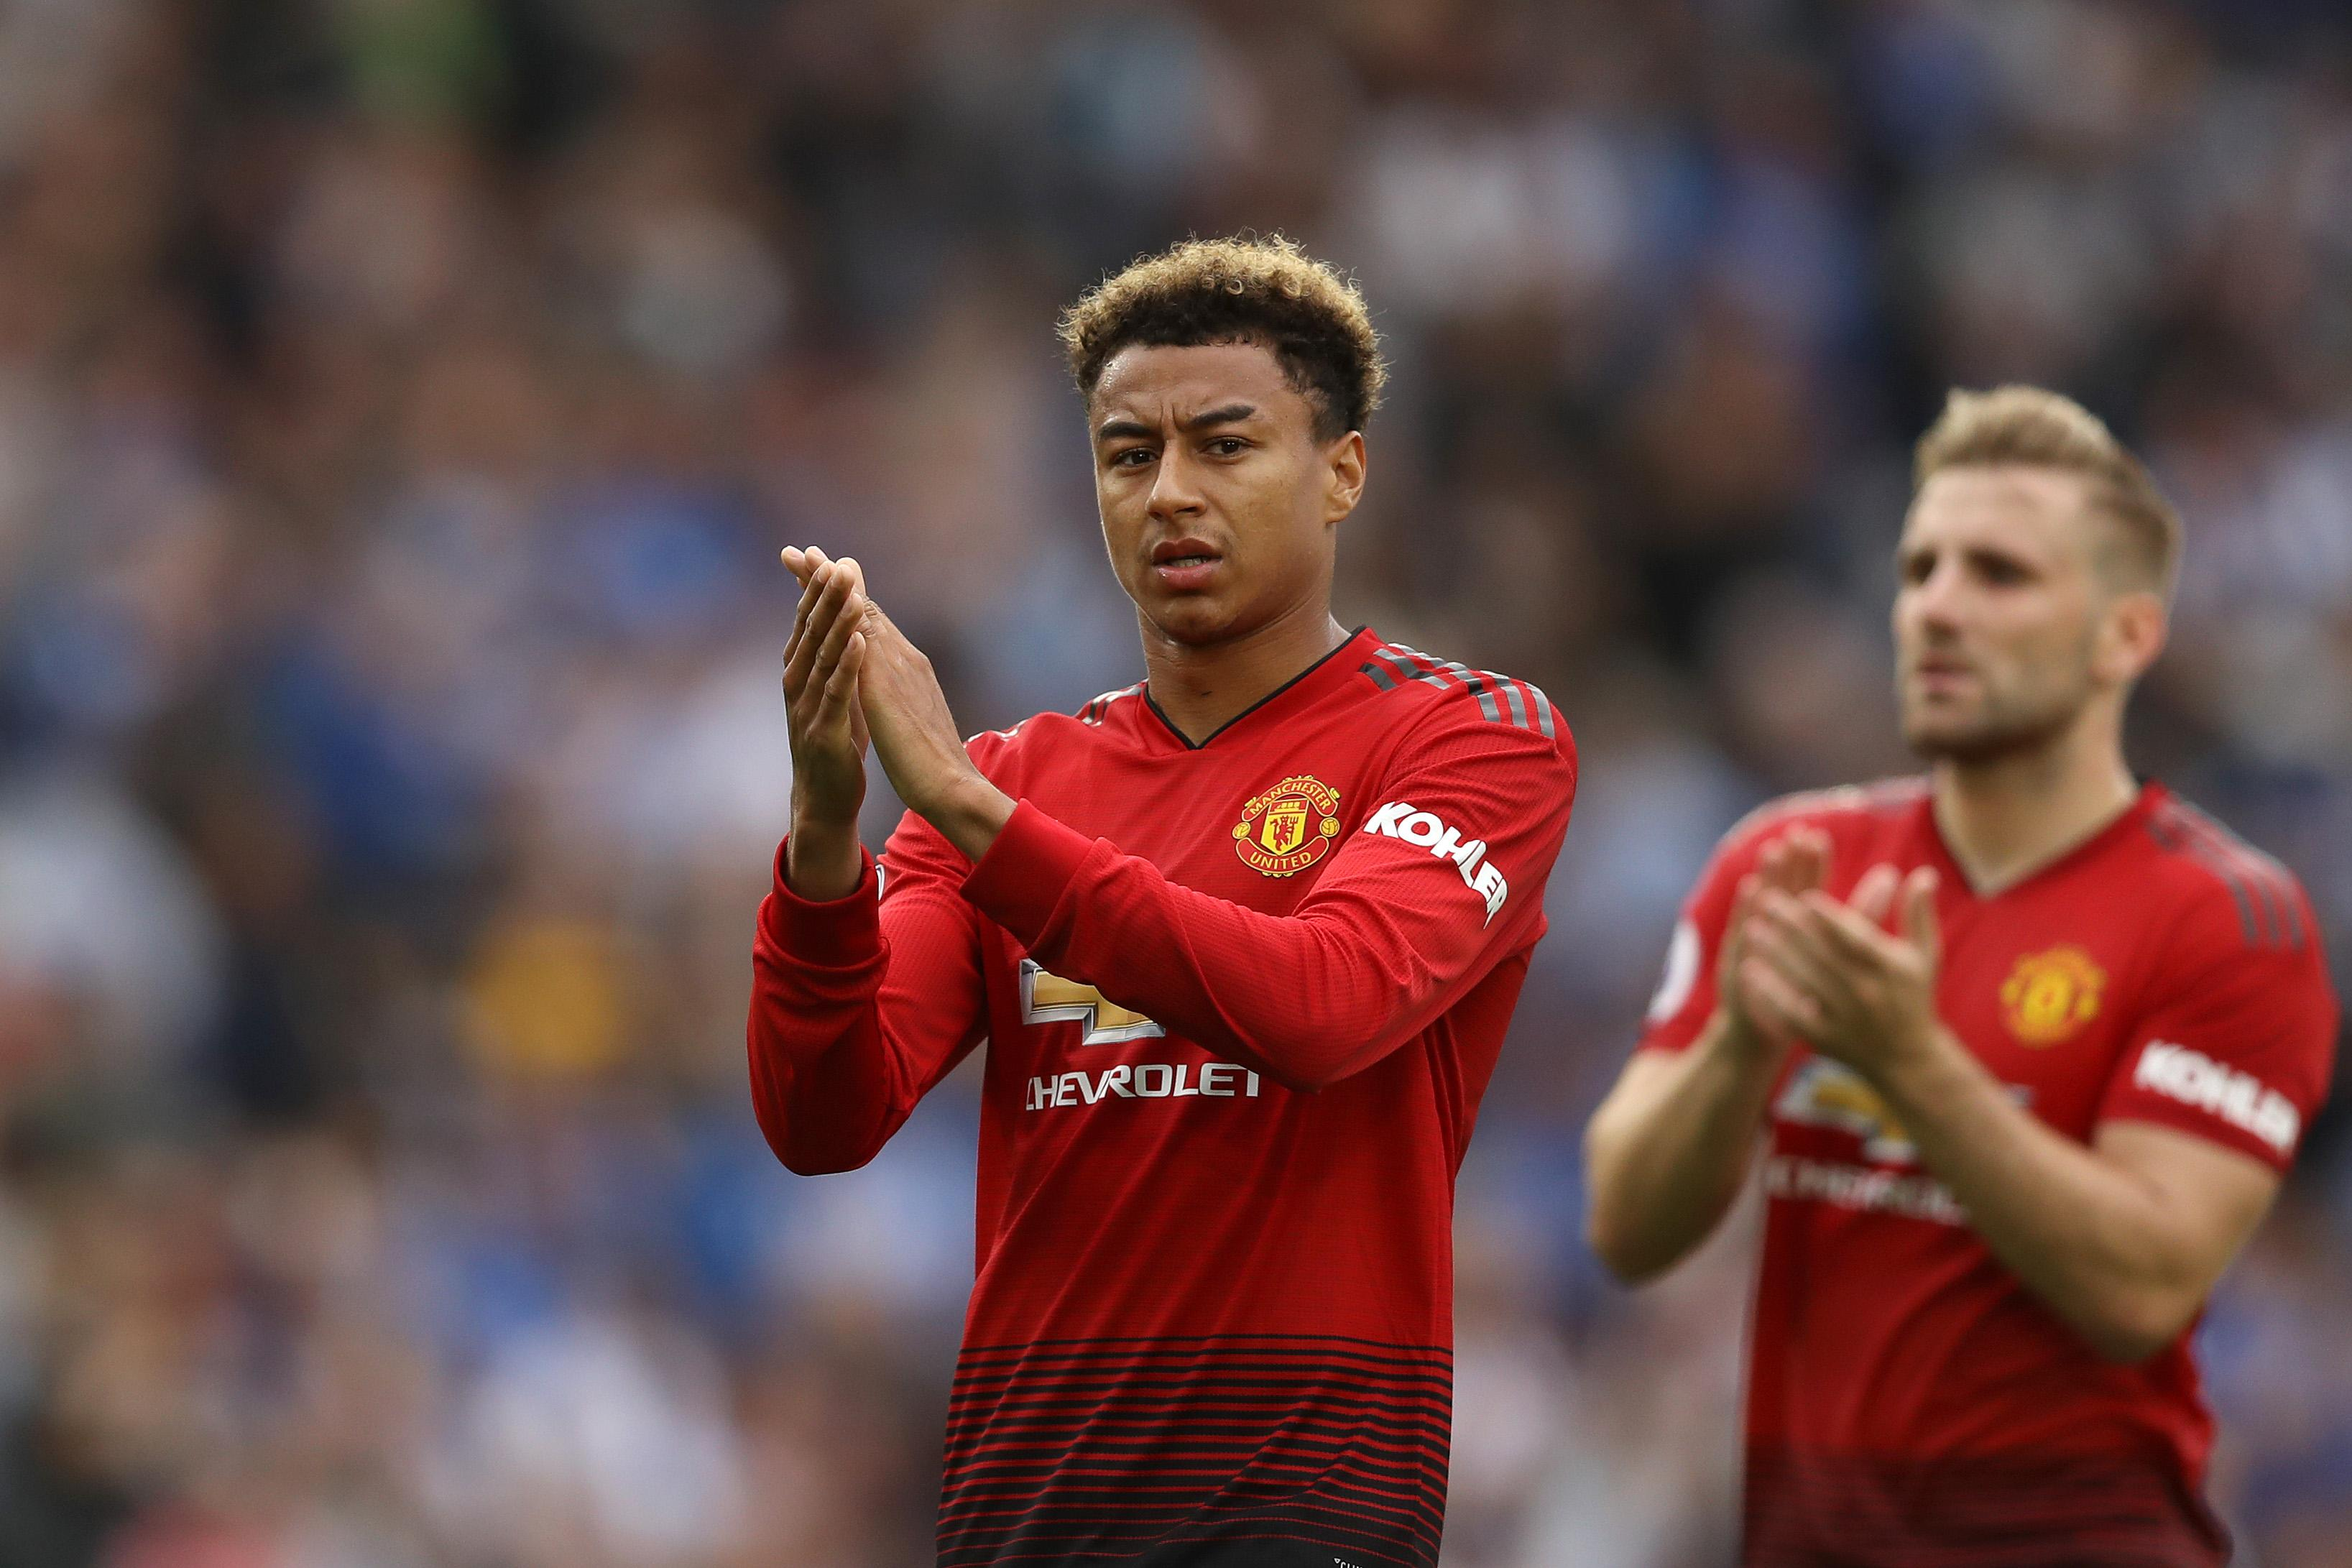 FIFA 19  Manchester United star Jesse Lingard demands stats upgrade     Jesse Lingard applauds fans after Manchester United s defeat to Brighton  this season